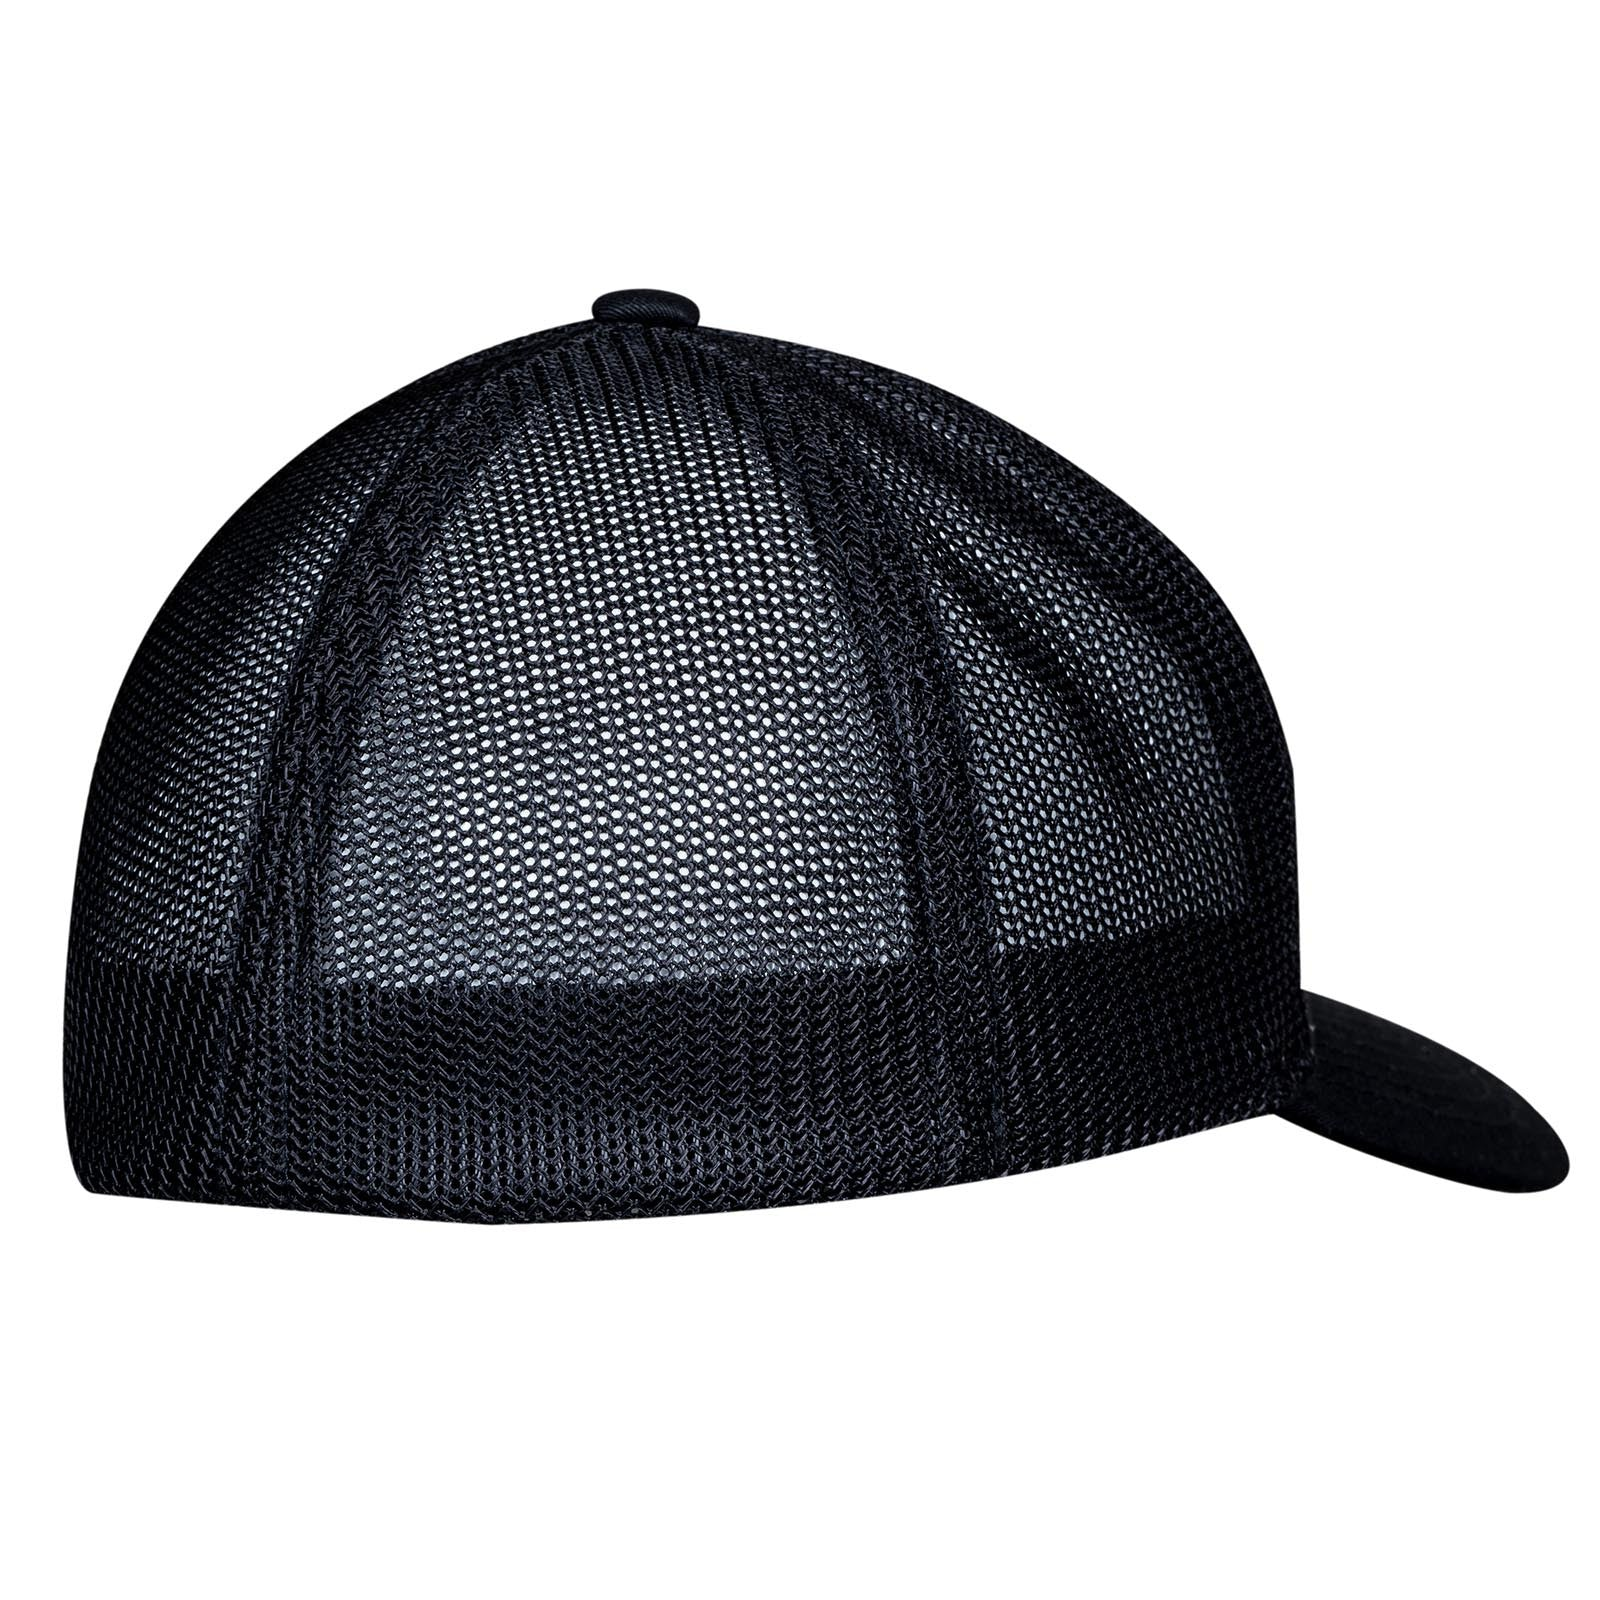 ROKA Sports Pro Team Flexfit Hat  c5999e917bf